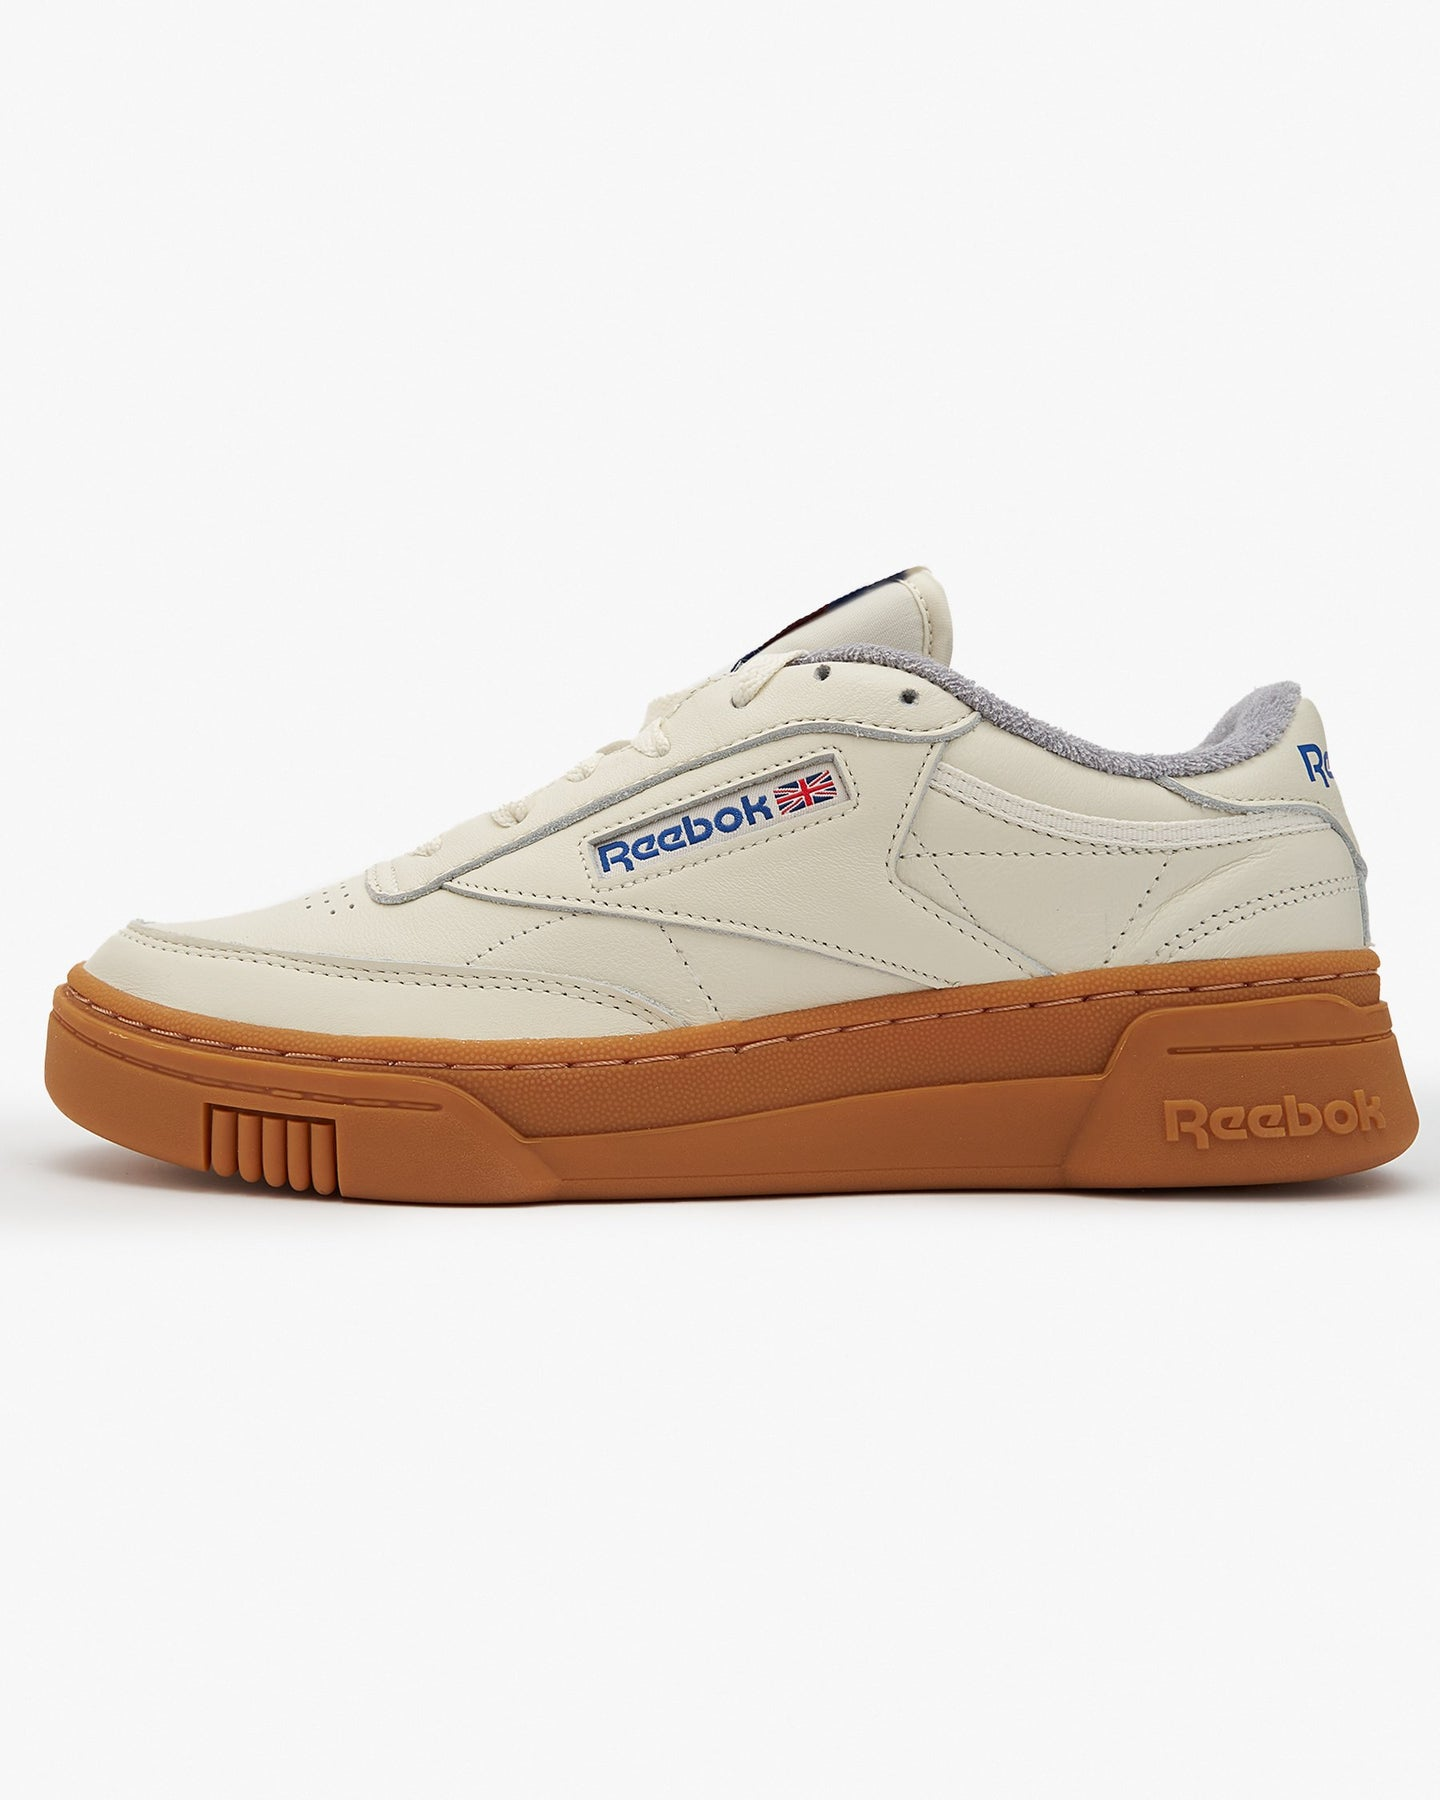 Reebok Classic Club C Stacked - Chalk / Pure Grey 3 / Gum UK 7 FW62517 4062059754125 Reebok Classic Trainers